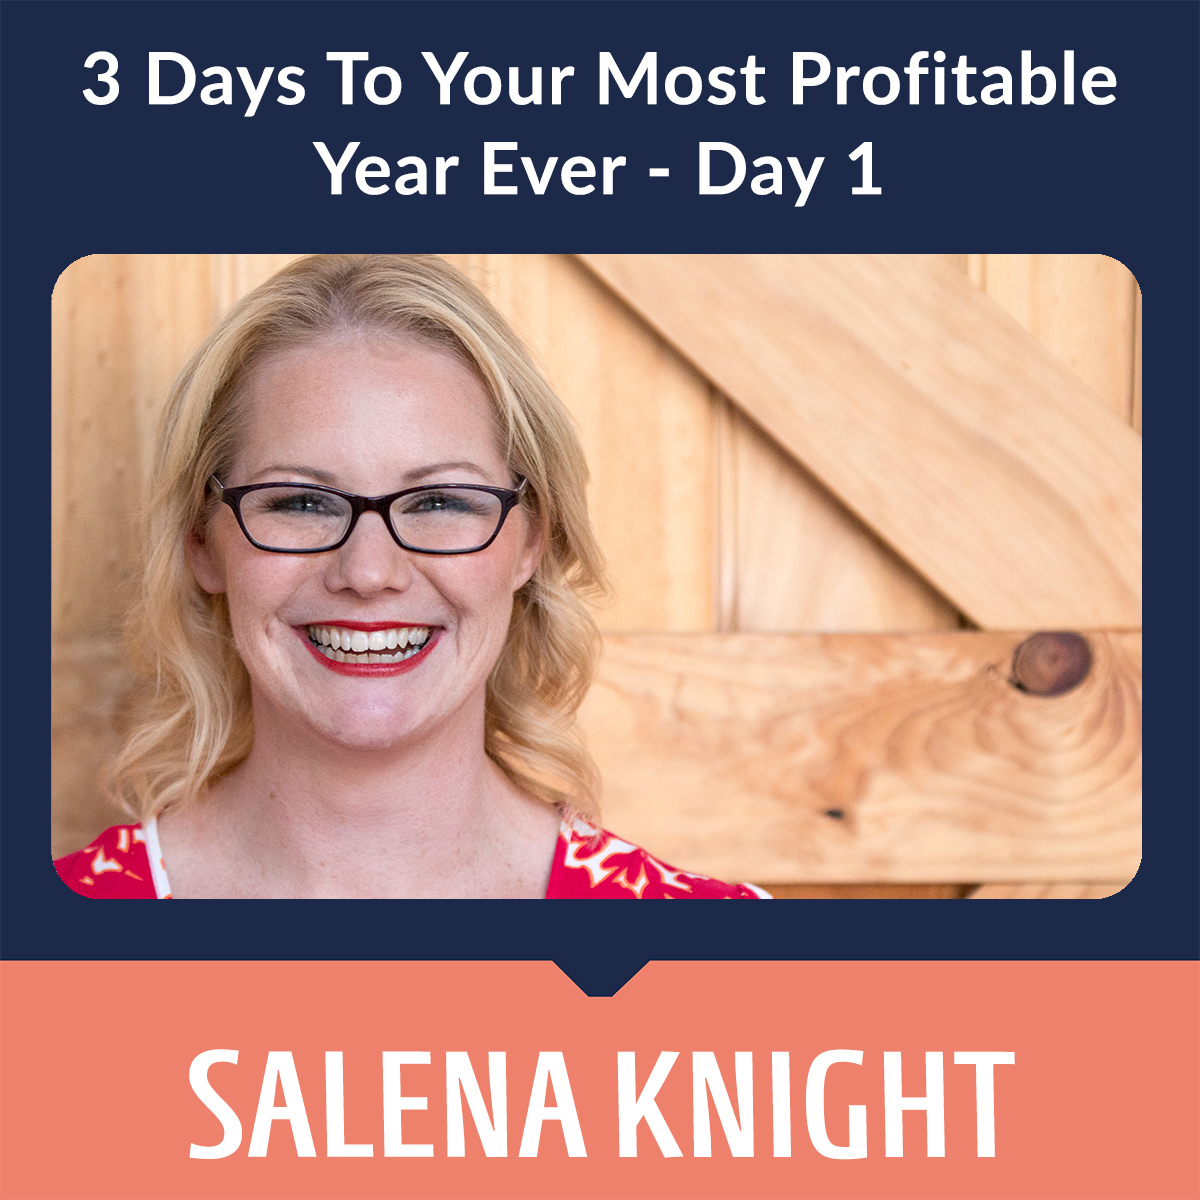 3_Days_To_Your_Most_Profitable_sqr